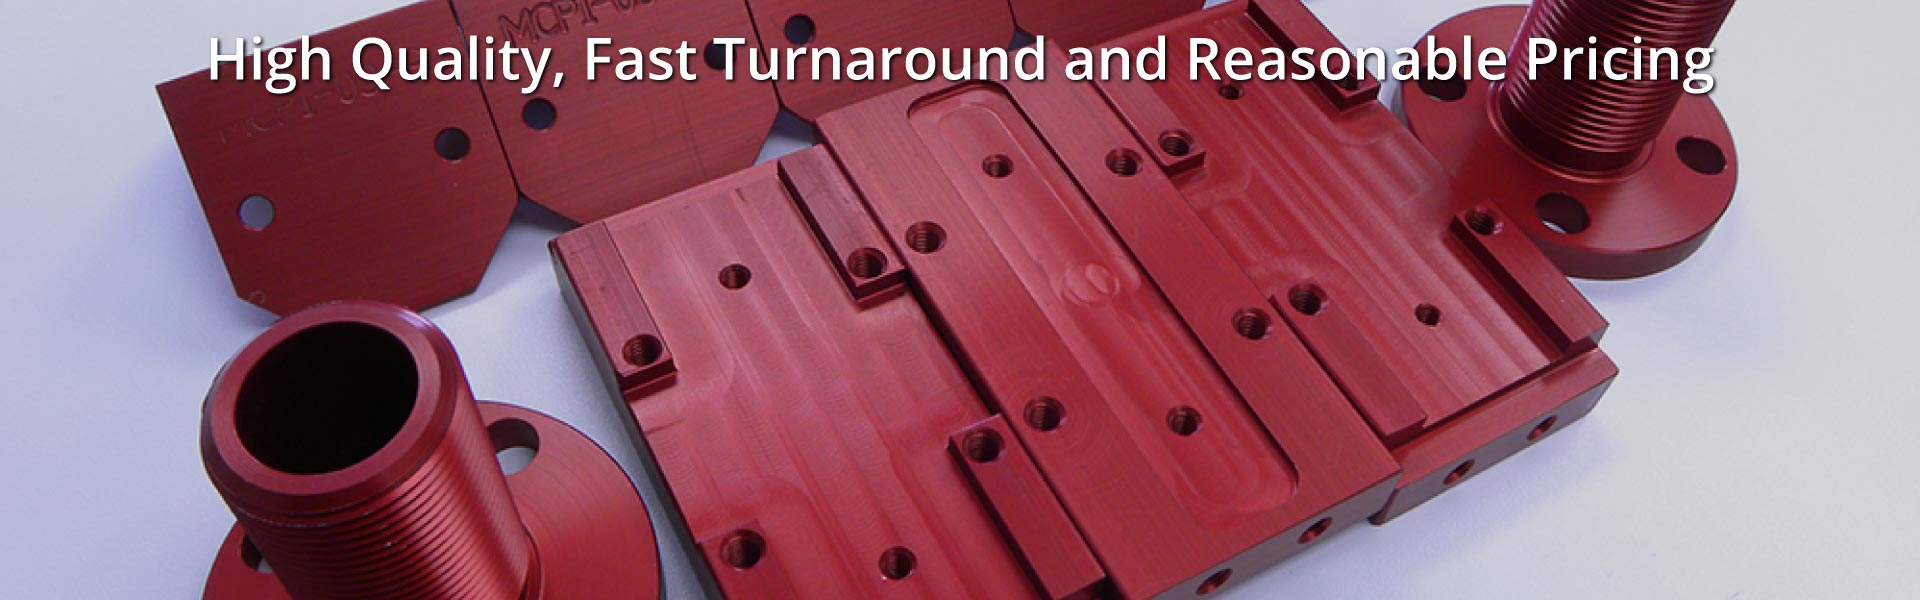 High Quality, Fast Turnaround and Reasonable Pricing | red Anodizing on Aluminum